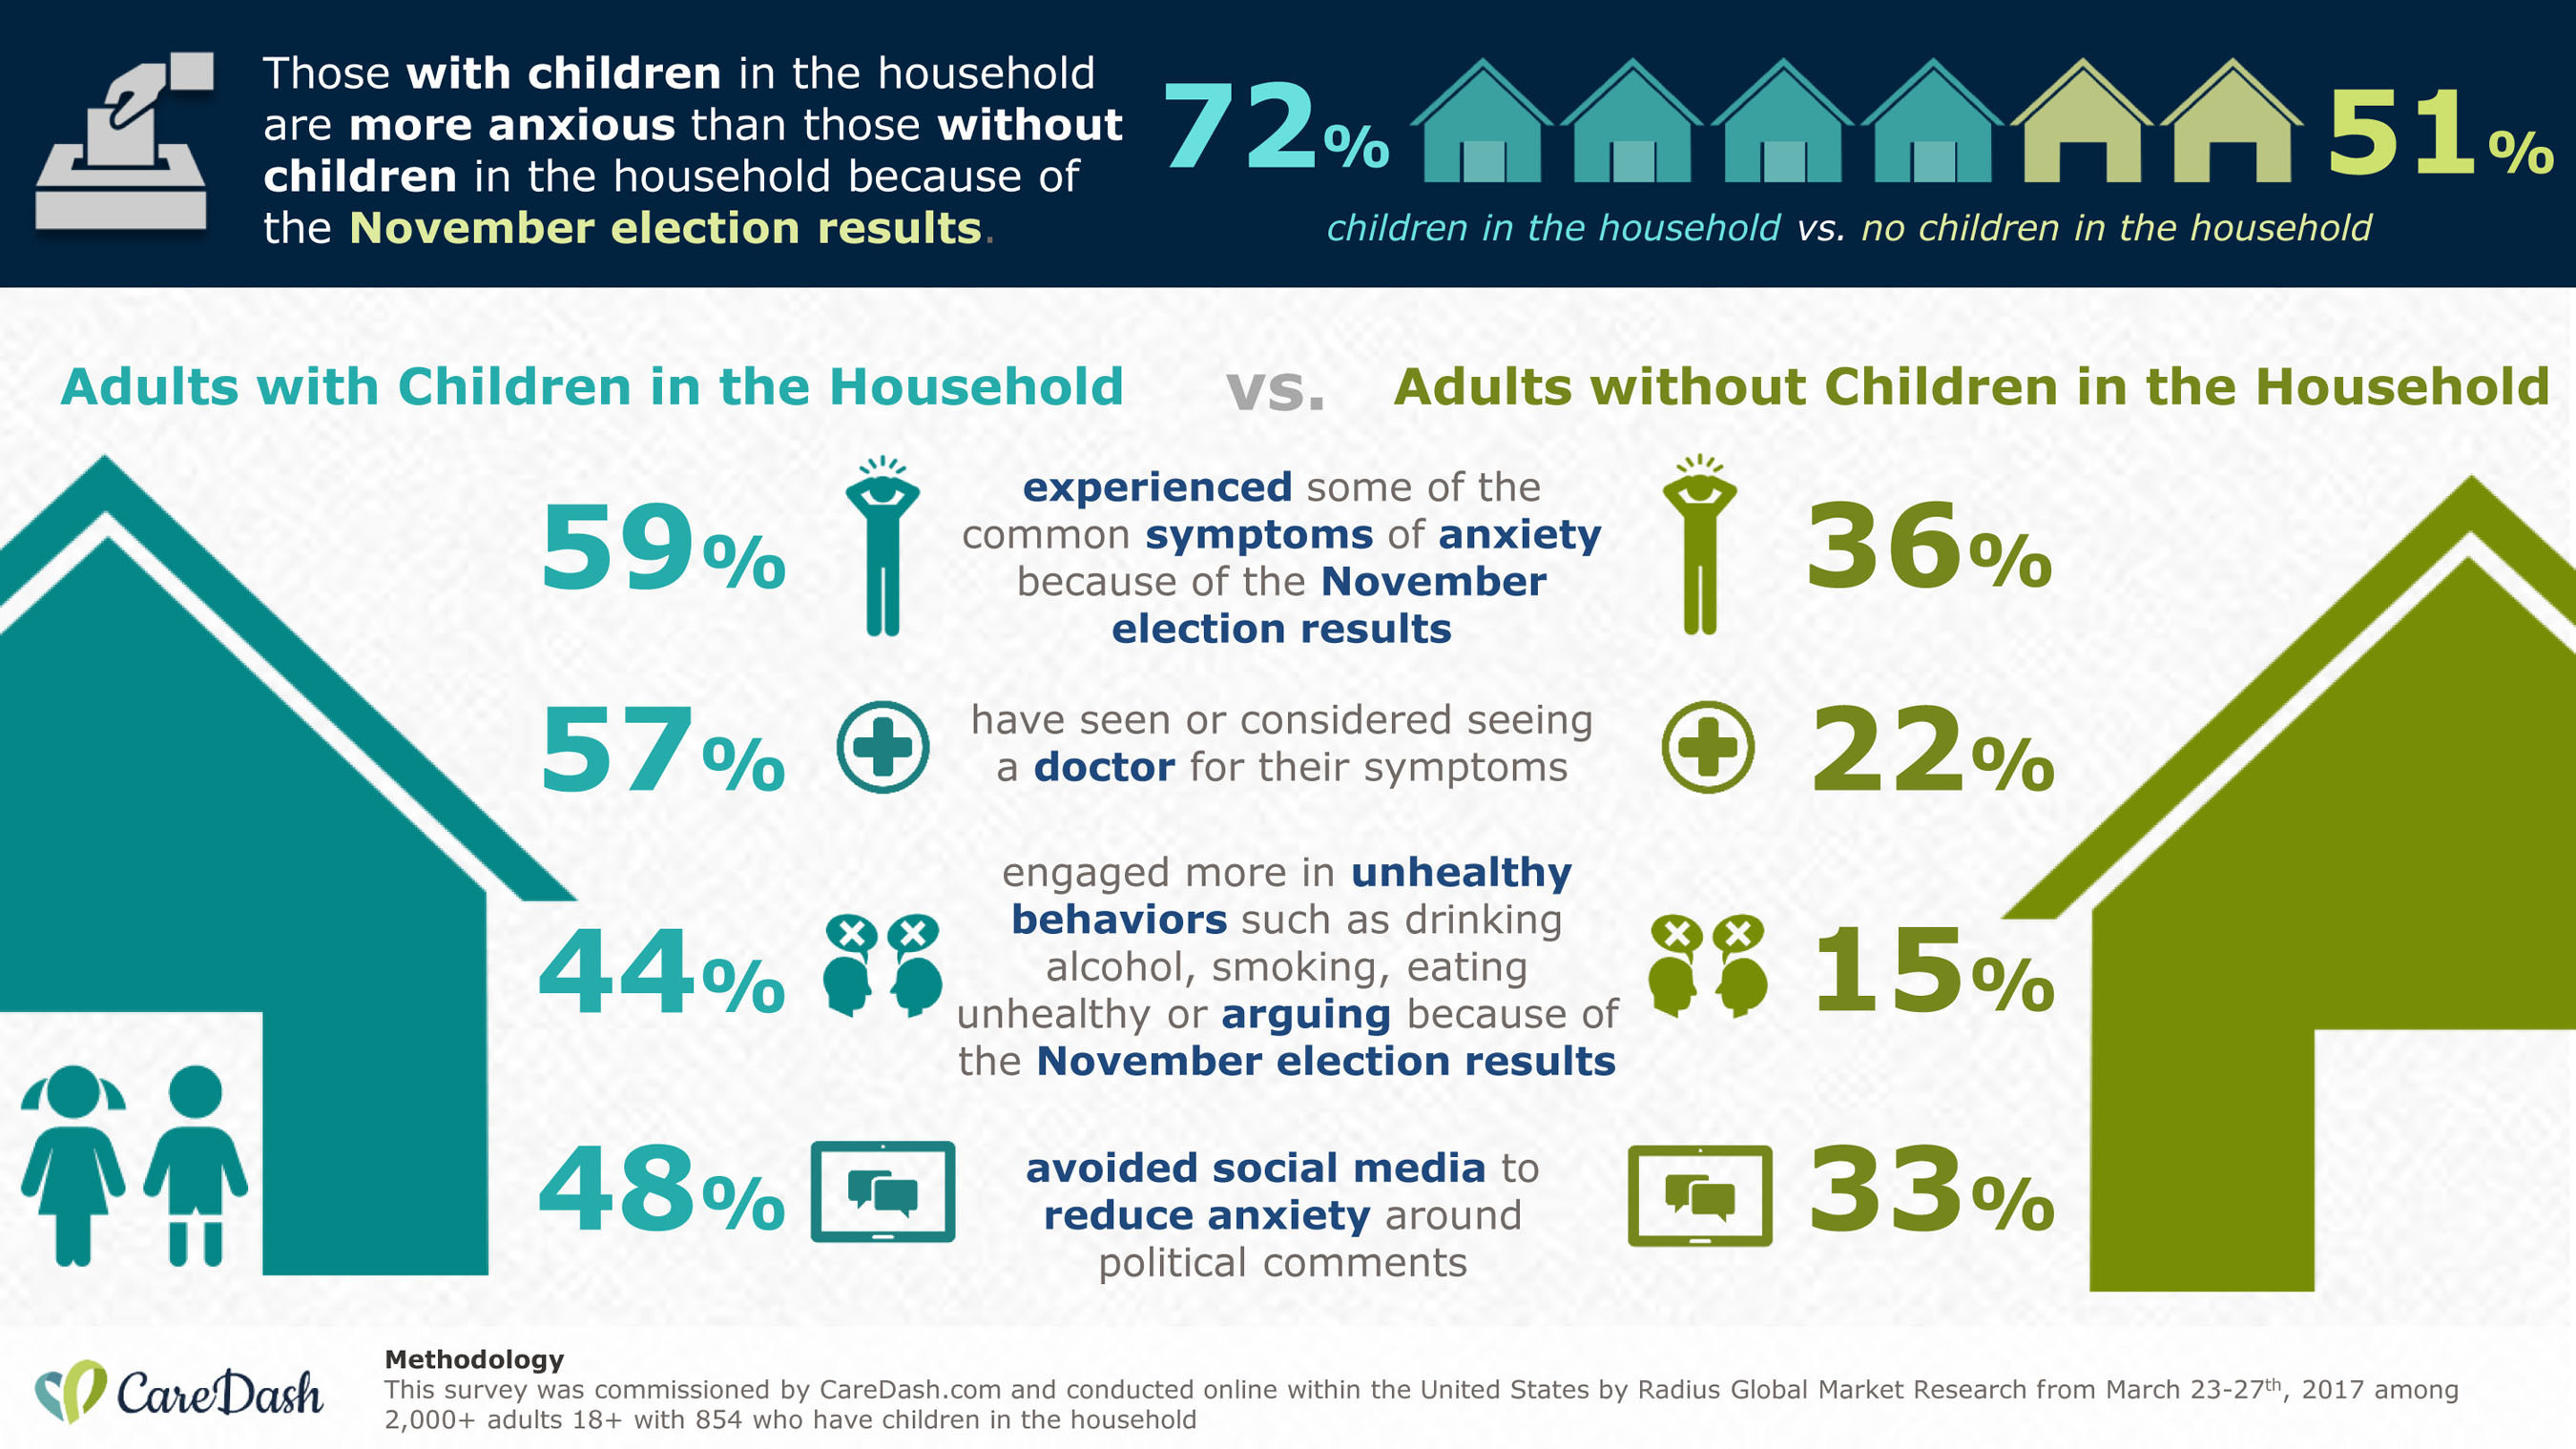 """According to a recent survey commissioned by CareDash.com and conducted by Radius Global Market Research, adults with children in the household are more anxious than adults without children in the household because of the current political environment as President Trump's """"First 100 Days"""" draws near."""